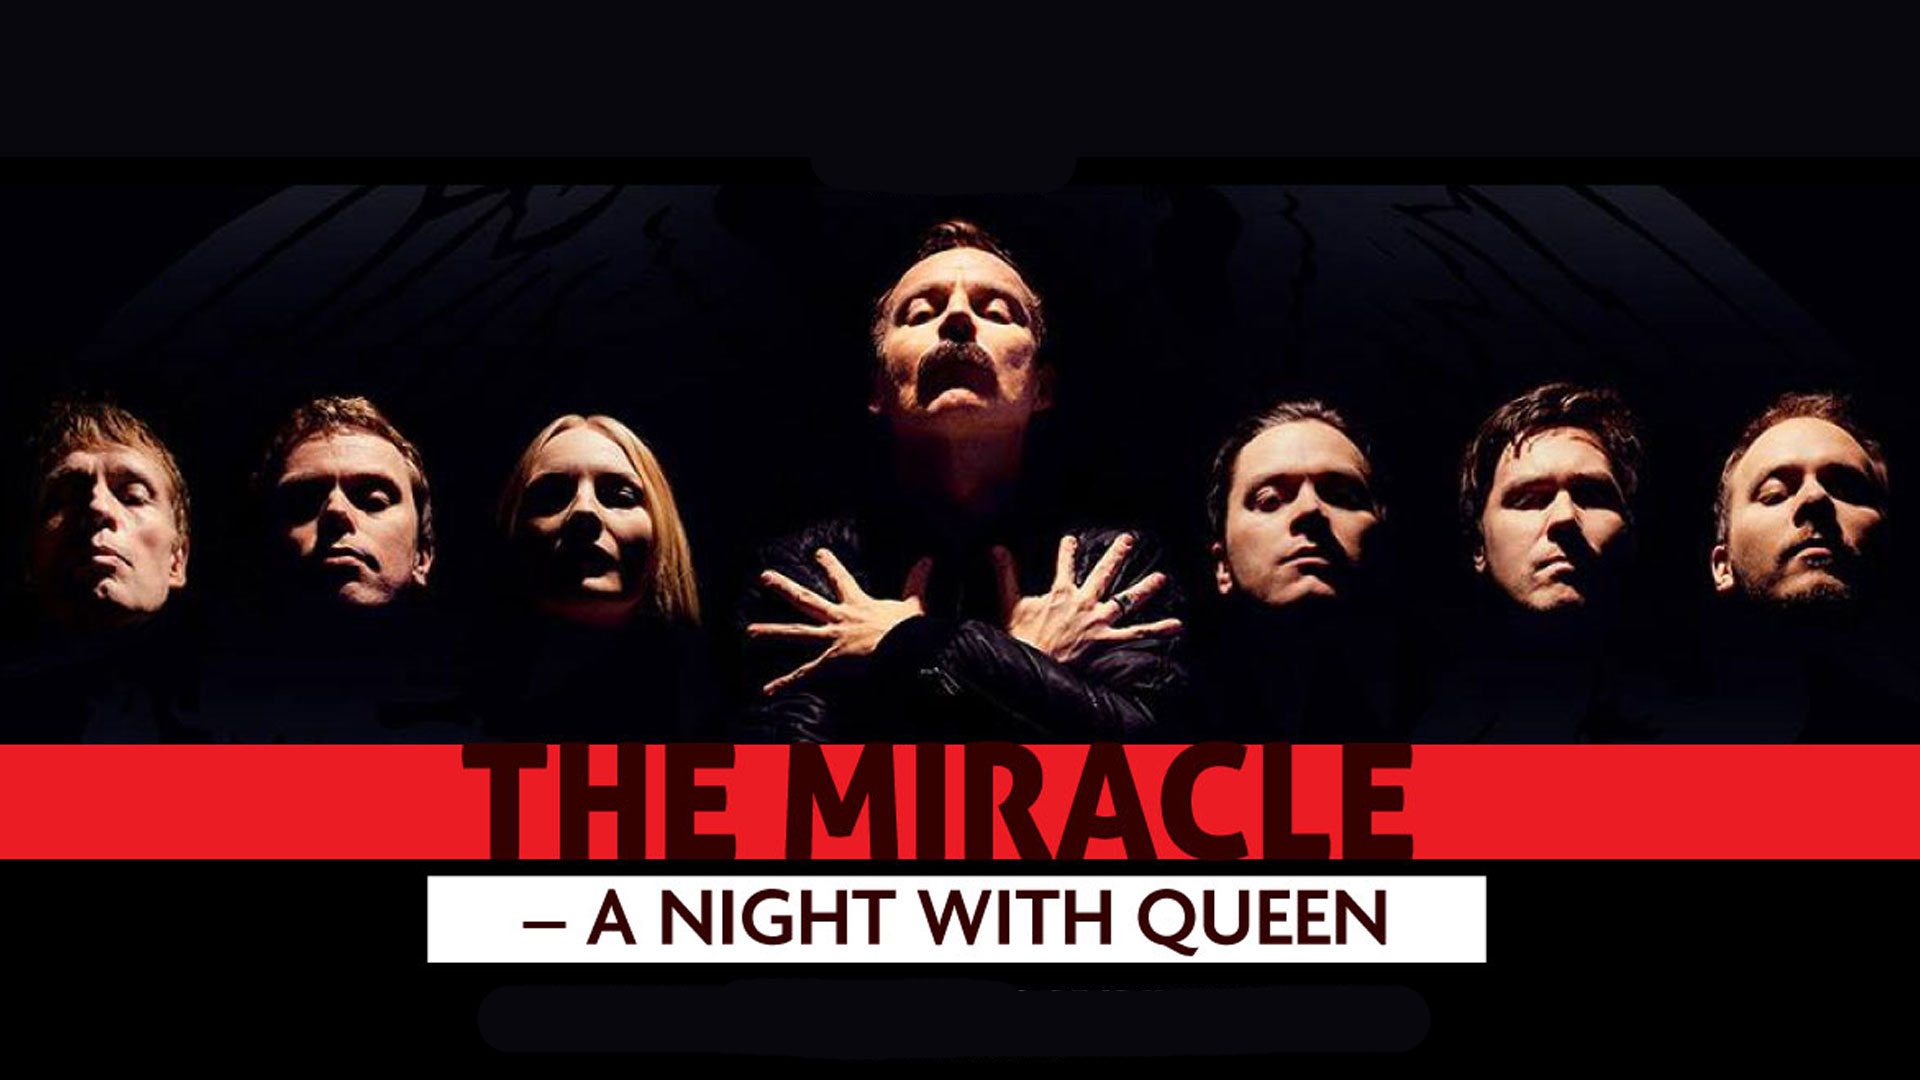 The Miracle - A Night With Queen pe 4.12.2020 klo 19.00